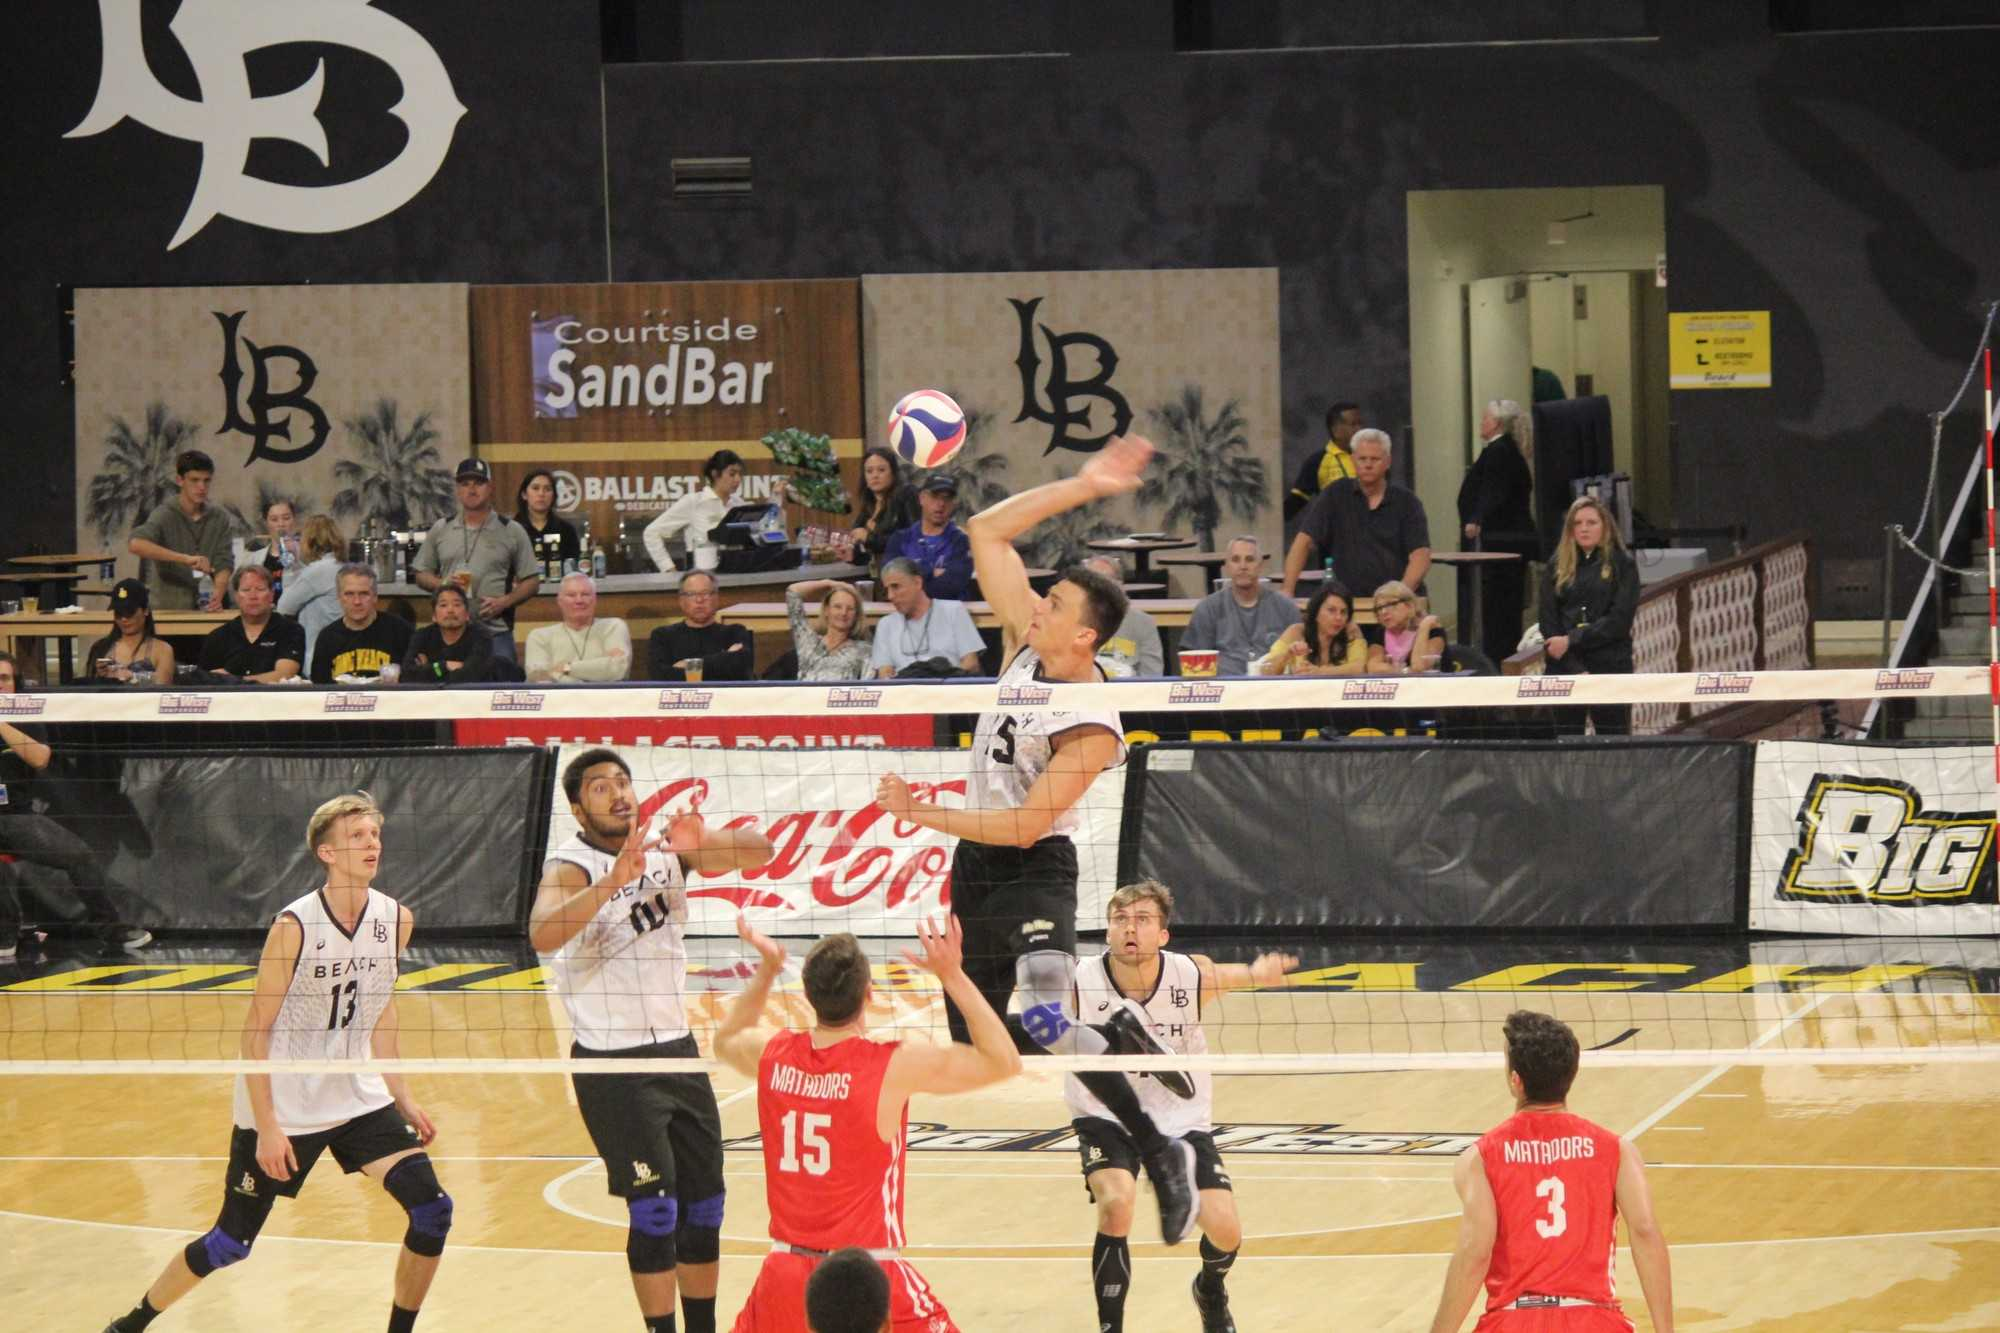 Beach's middle blocker Nick Amado soars to a quick set on the net towering over Eric Chance. Photo credit: Justin Vigil